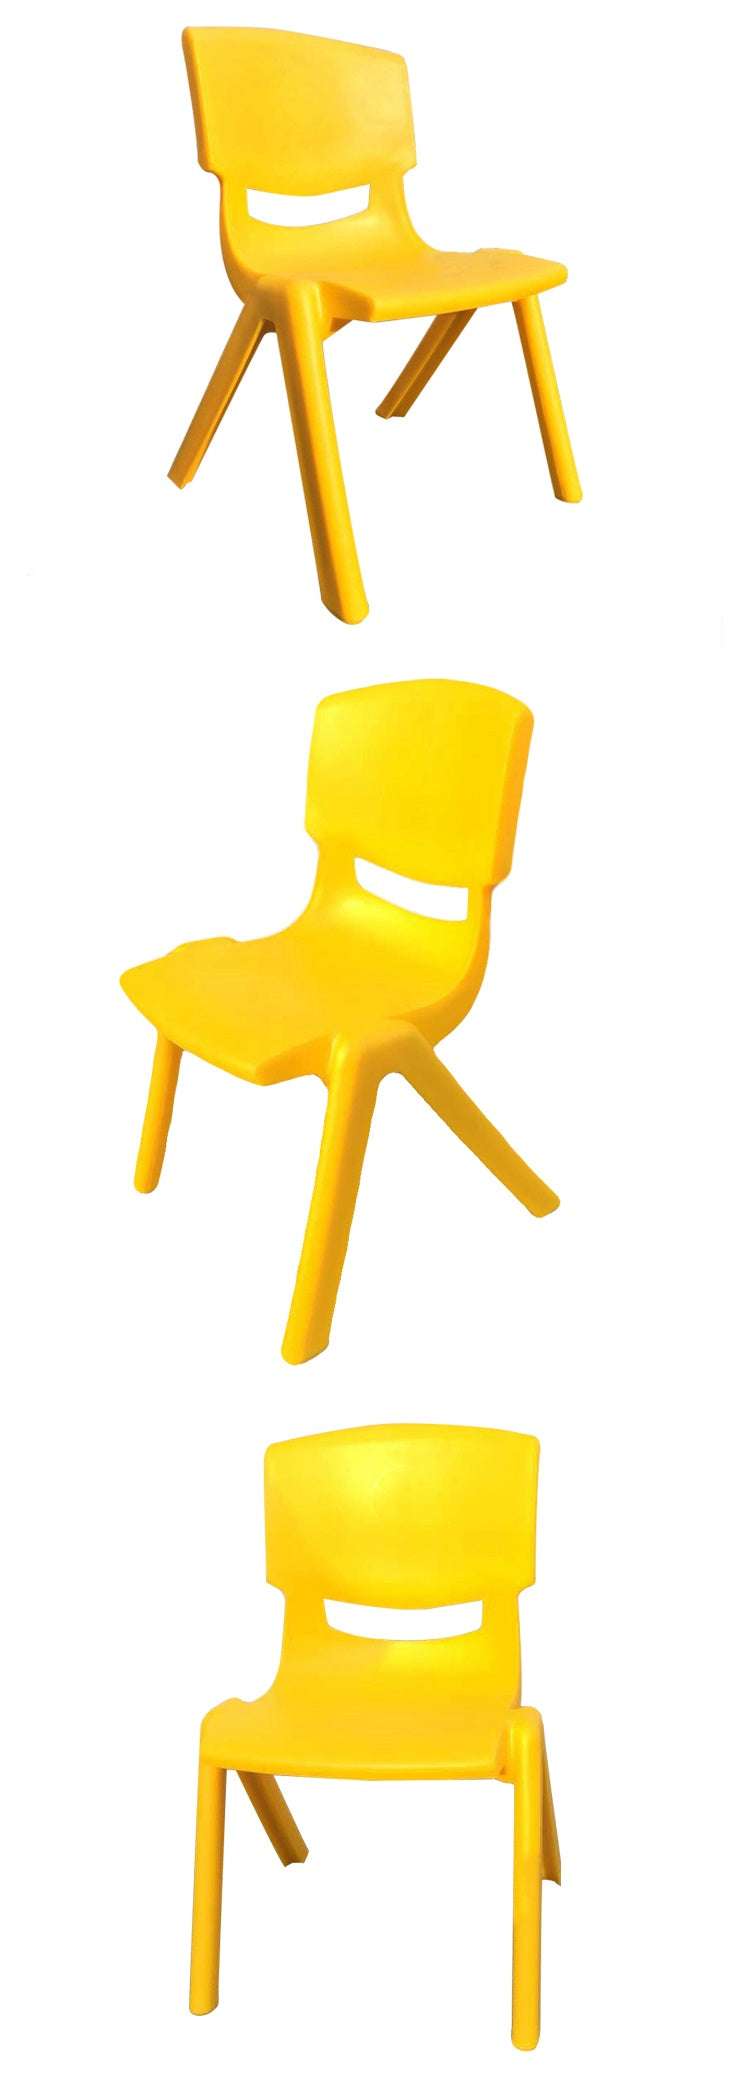 SET OF 6 YELLOW CHILDRENS CHAIRS FOR CHILDRENS TABLE HOLDS UP TO 100KG